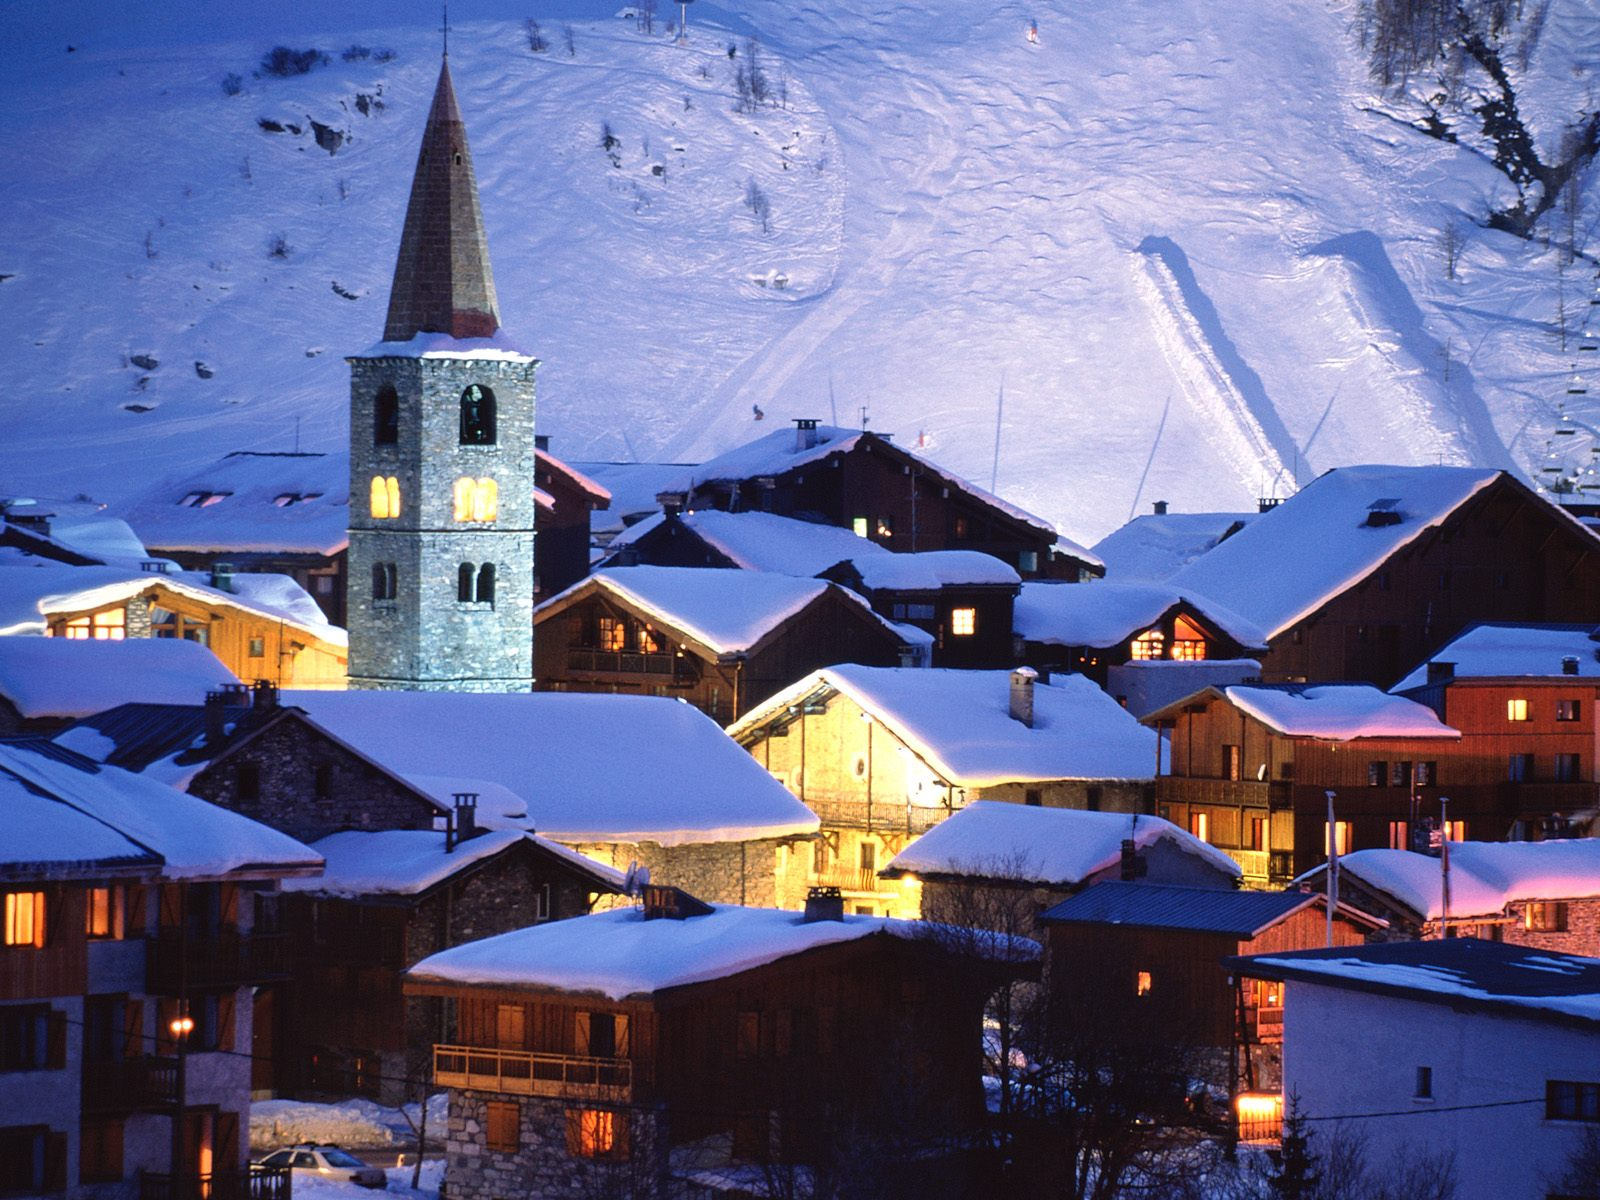 Val d 39 isere village france picture val d 39 isere village - Val d europe village horaire ...